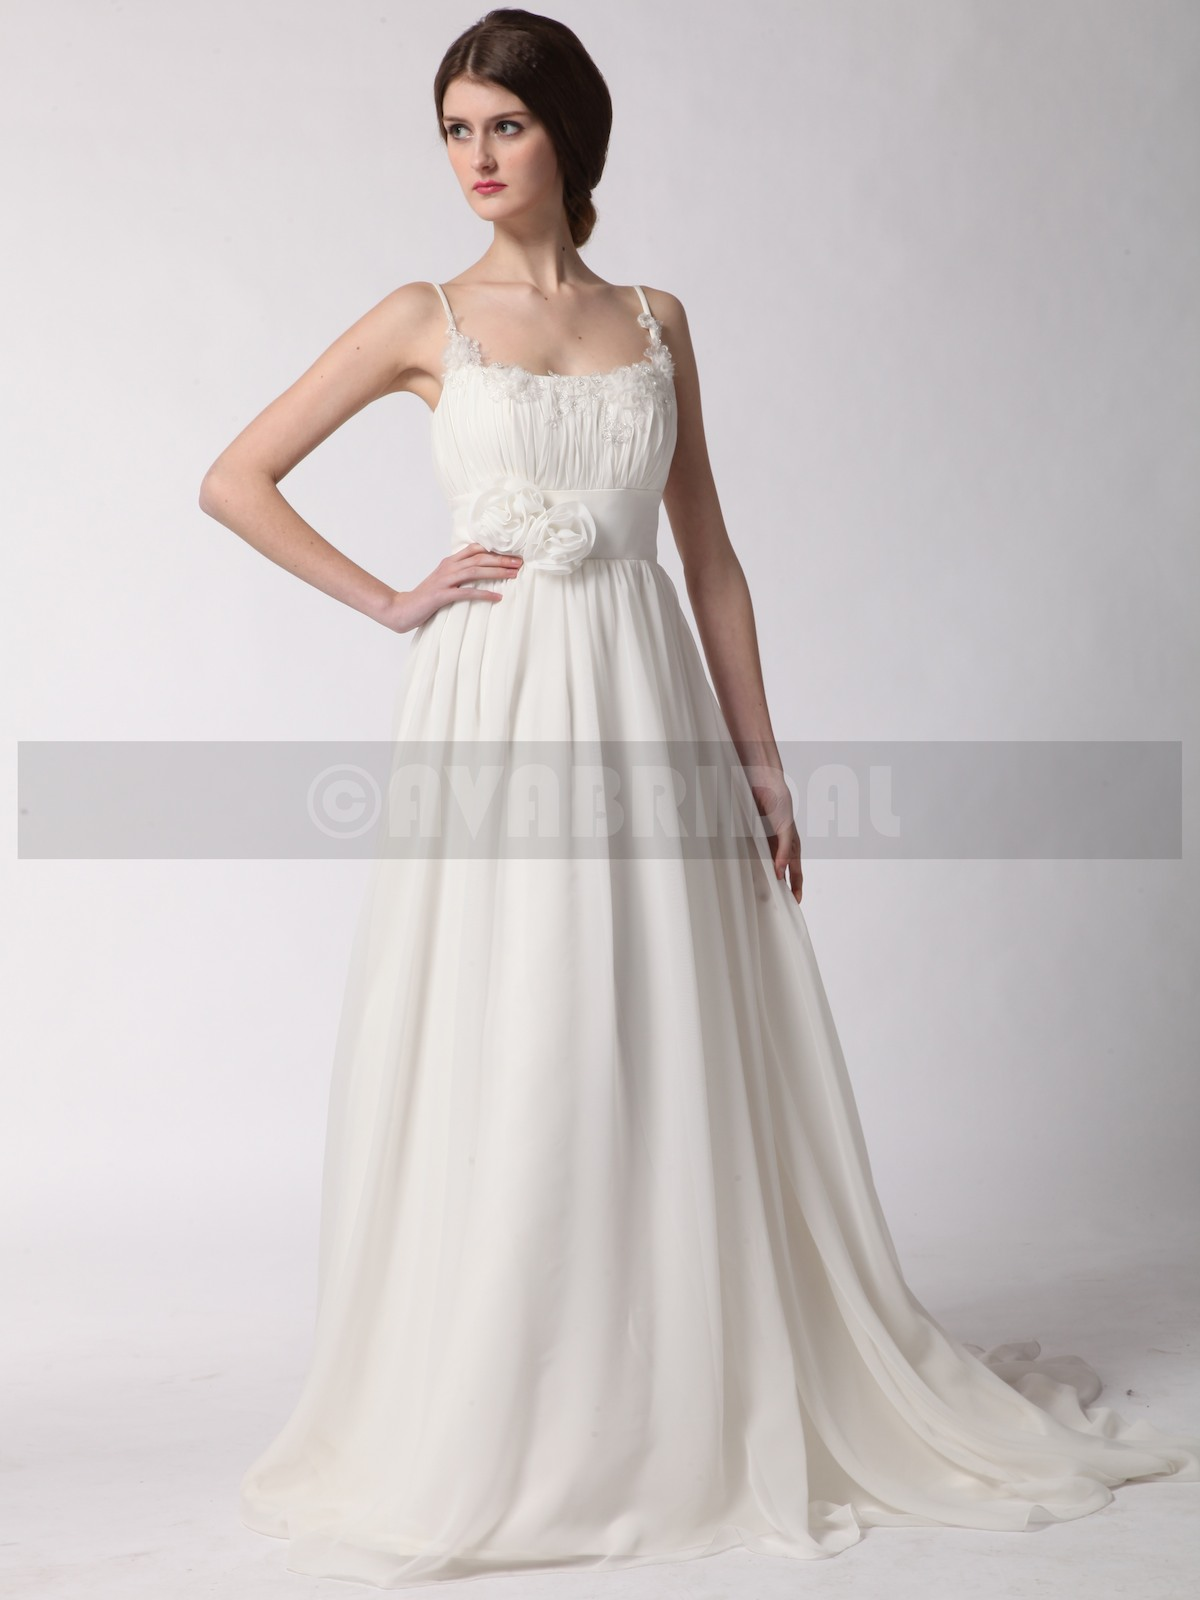 Grecian goddess wedding dress delia ava bridal for Grecian goddess wedding dresses